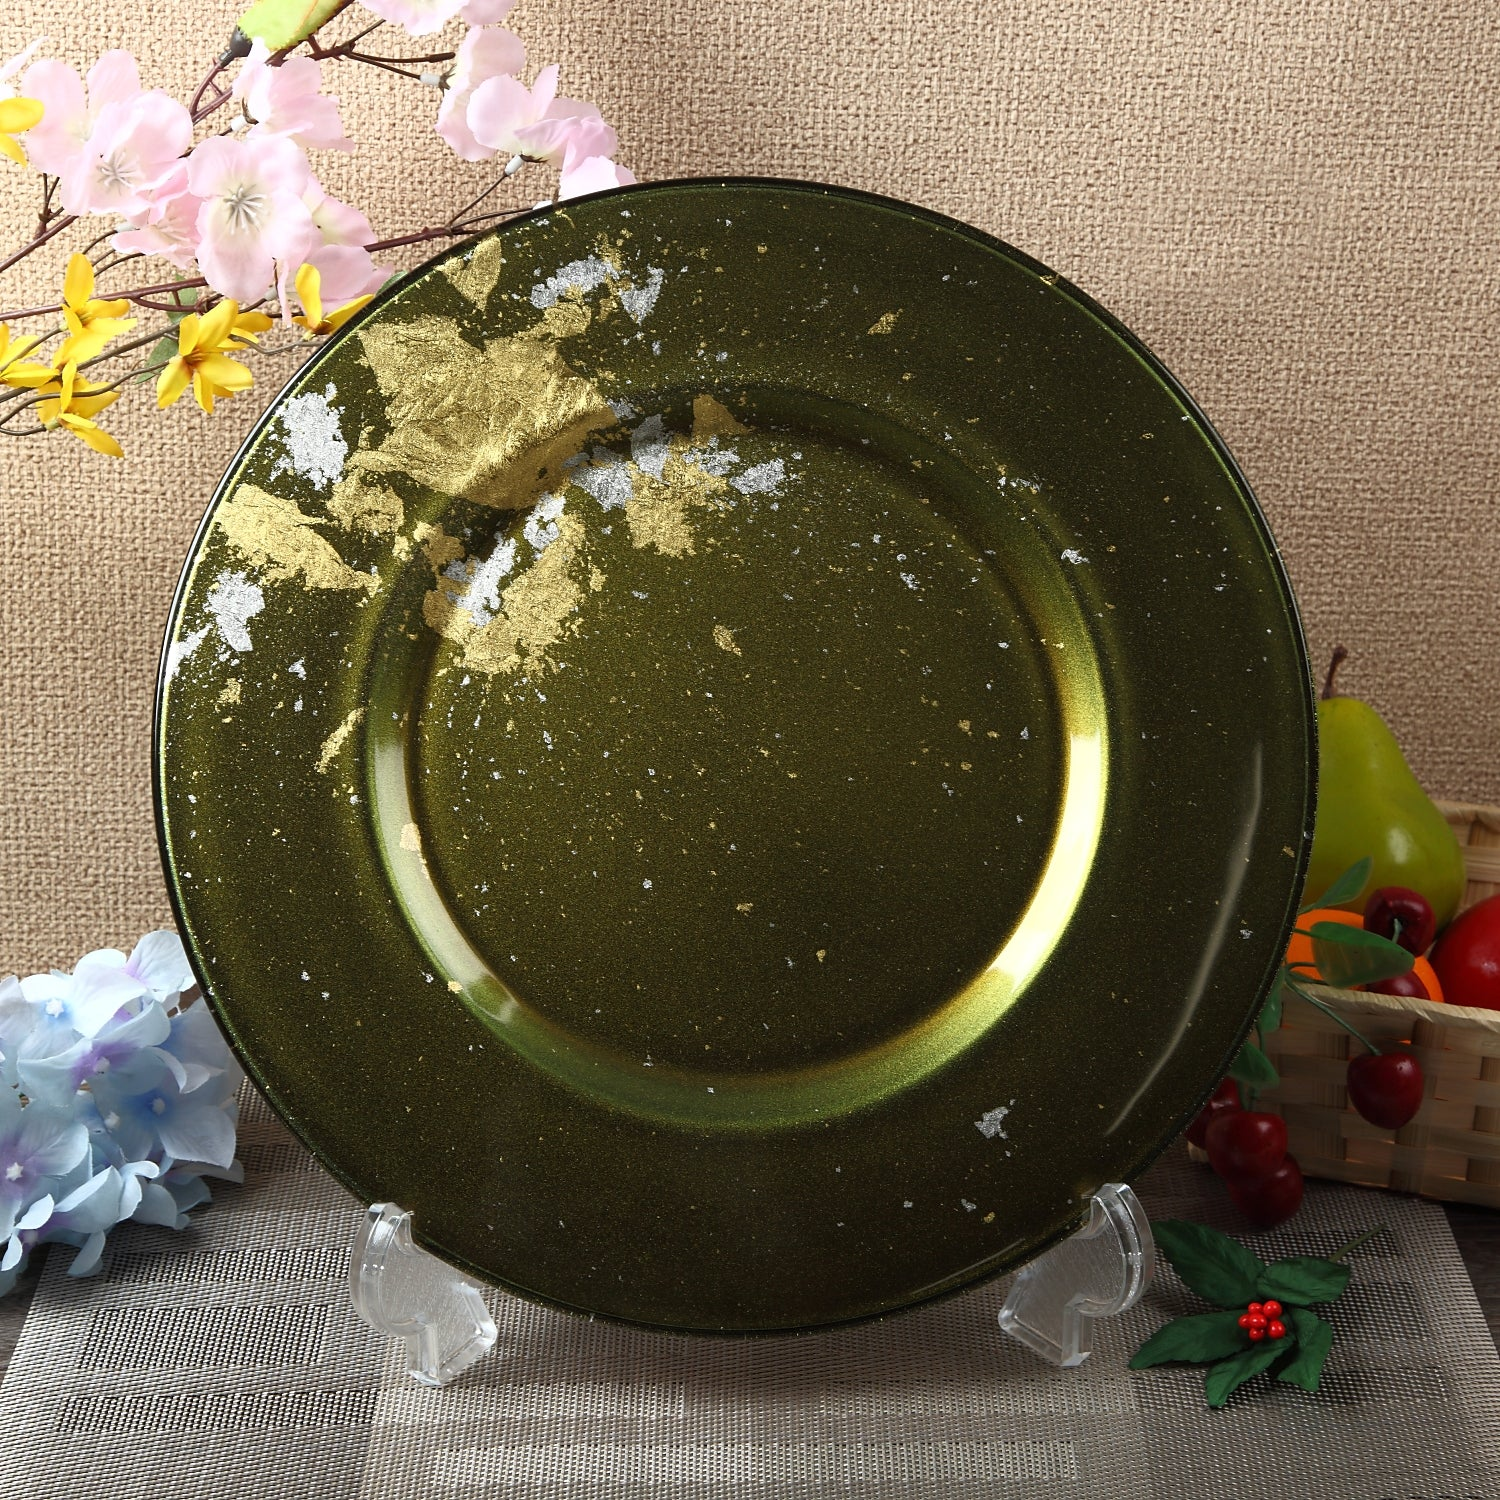 Syosaku Japanese Urushi Glass Charger Plate 13.9-inch (35cm) Majestic Green with Gold Leaf, Dishwasher Safe